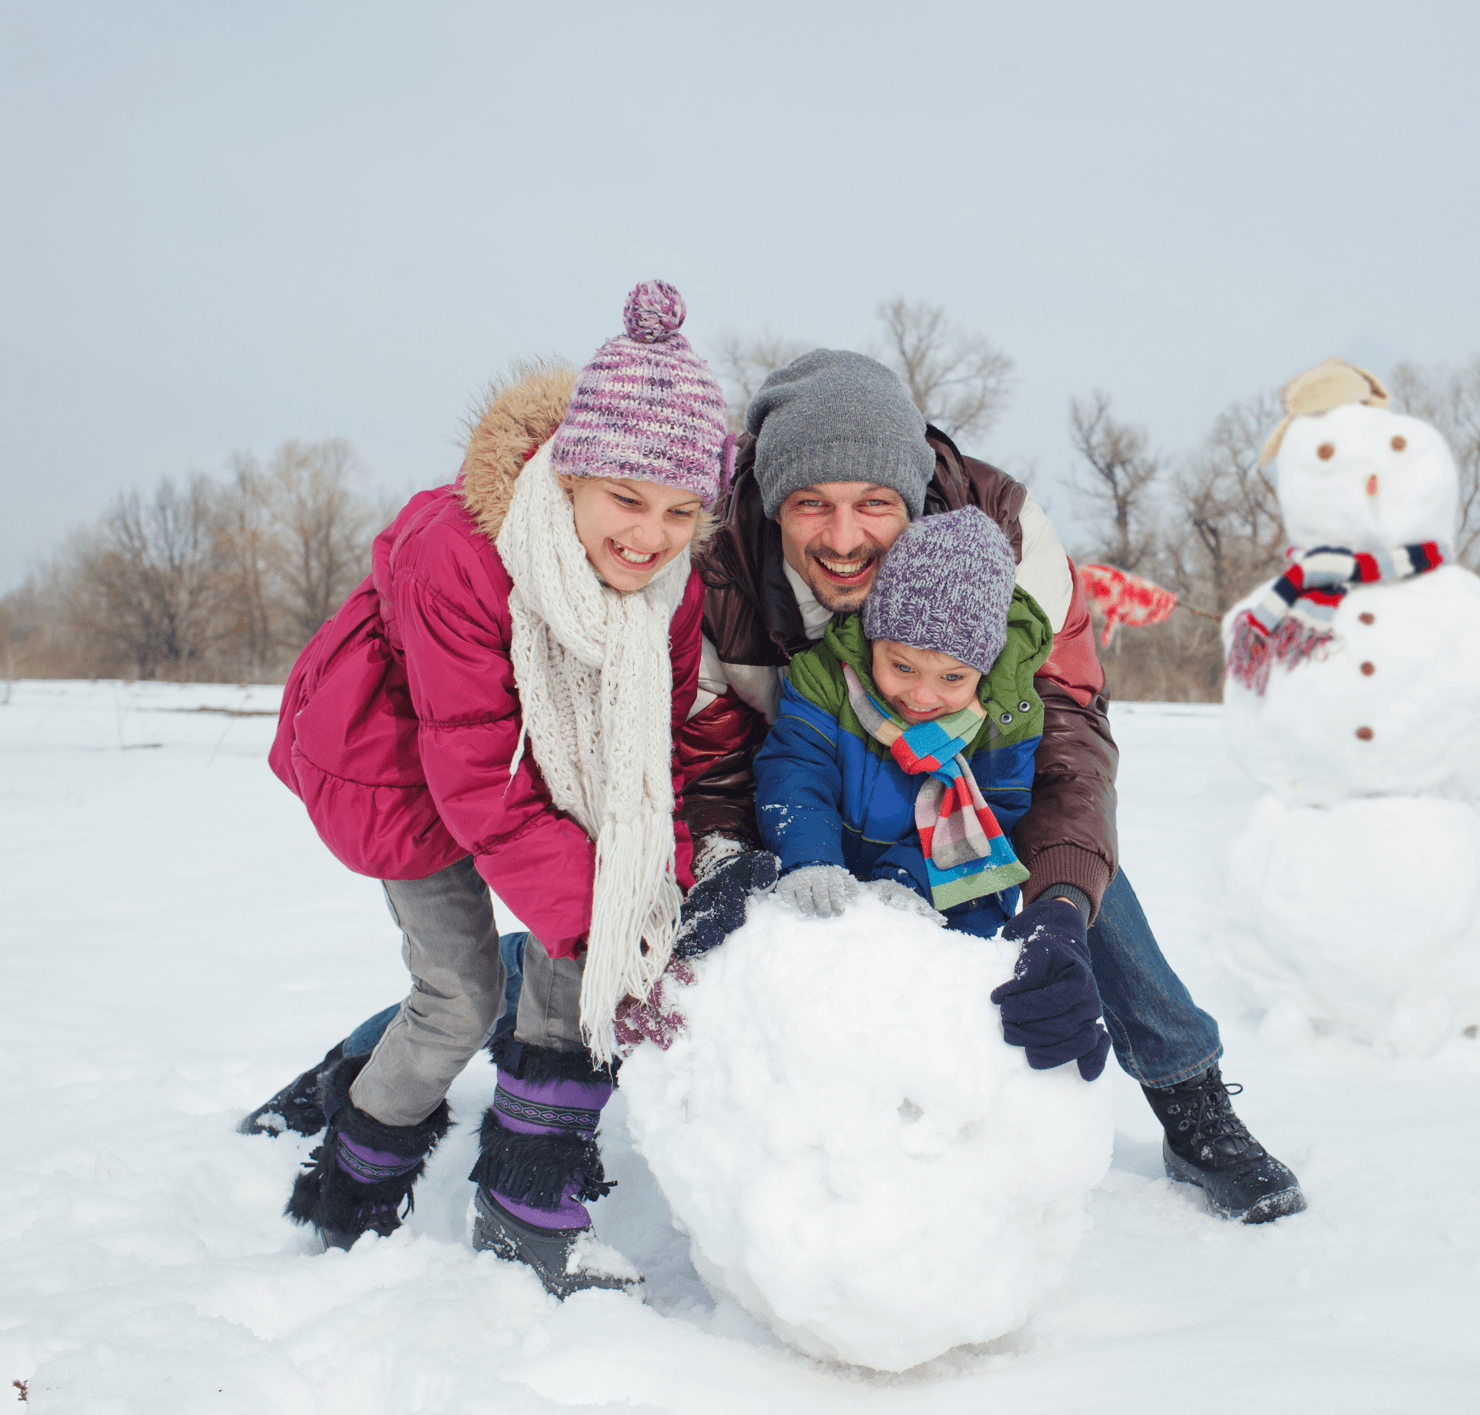 10 Reasons to Love Winters in Calgary Family Image